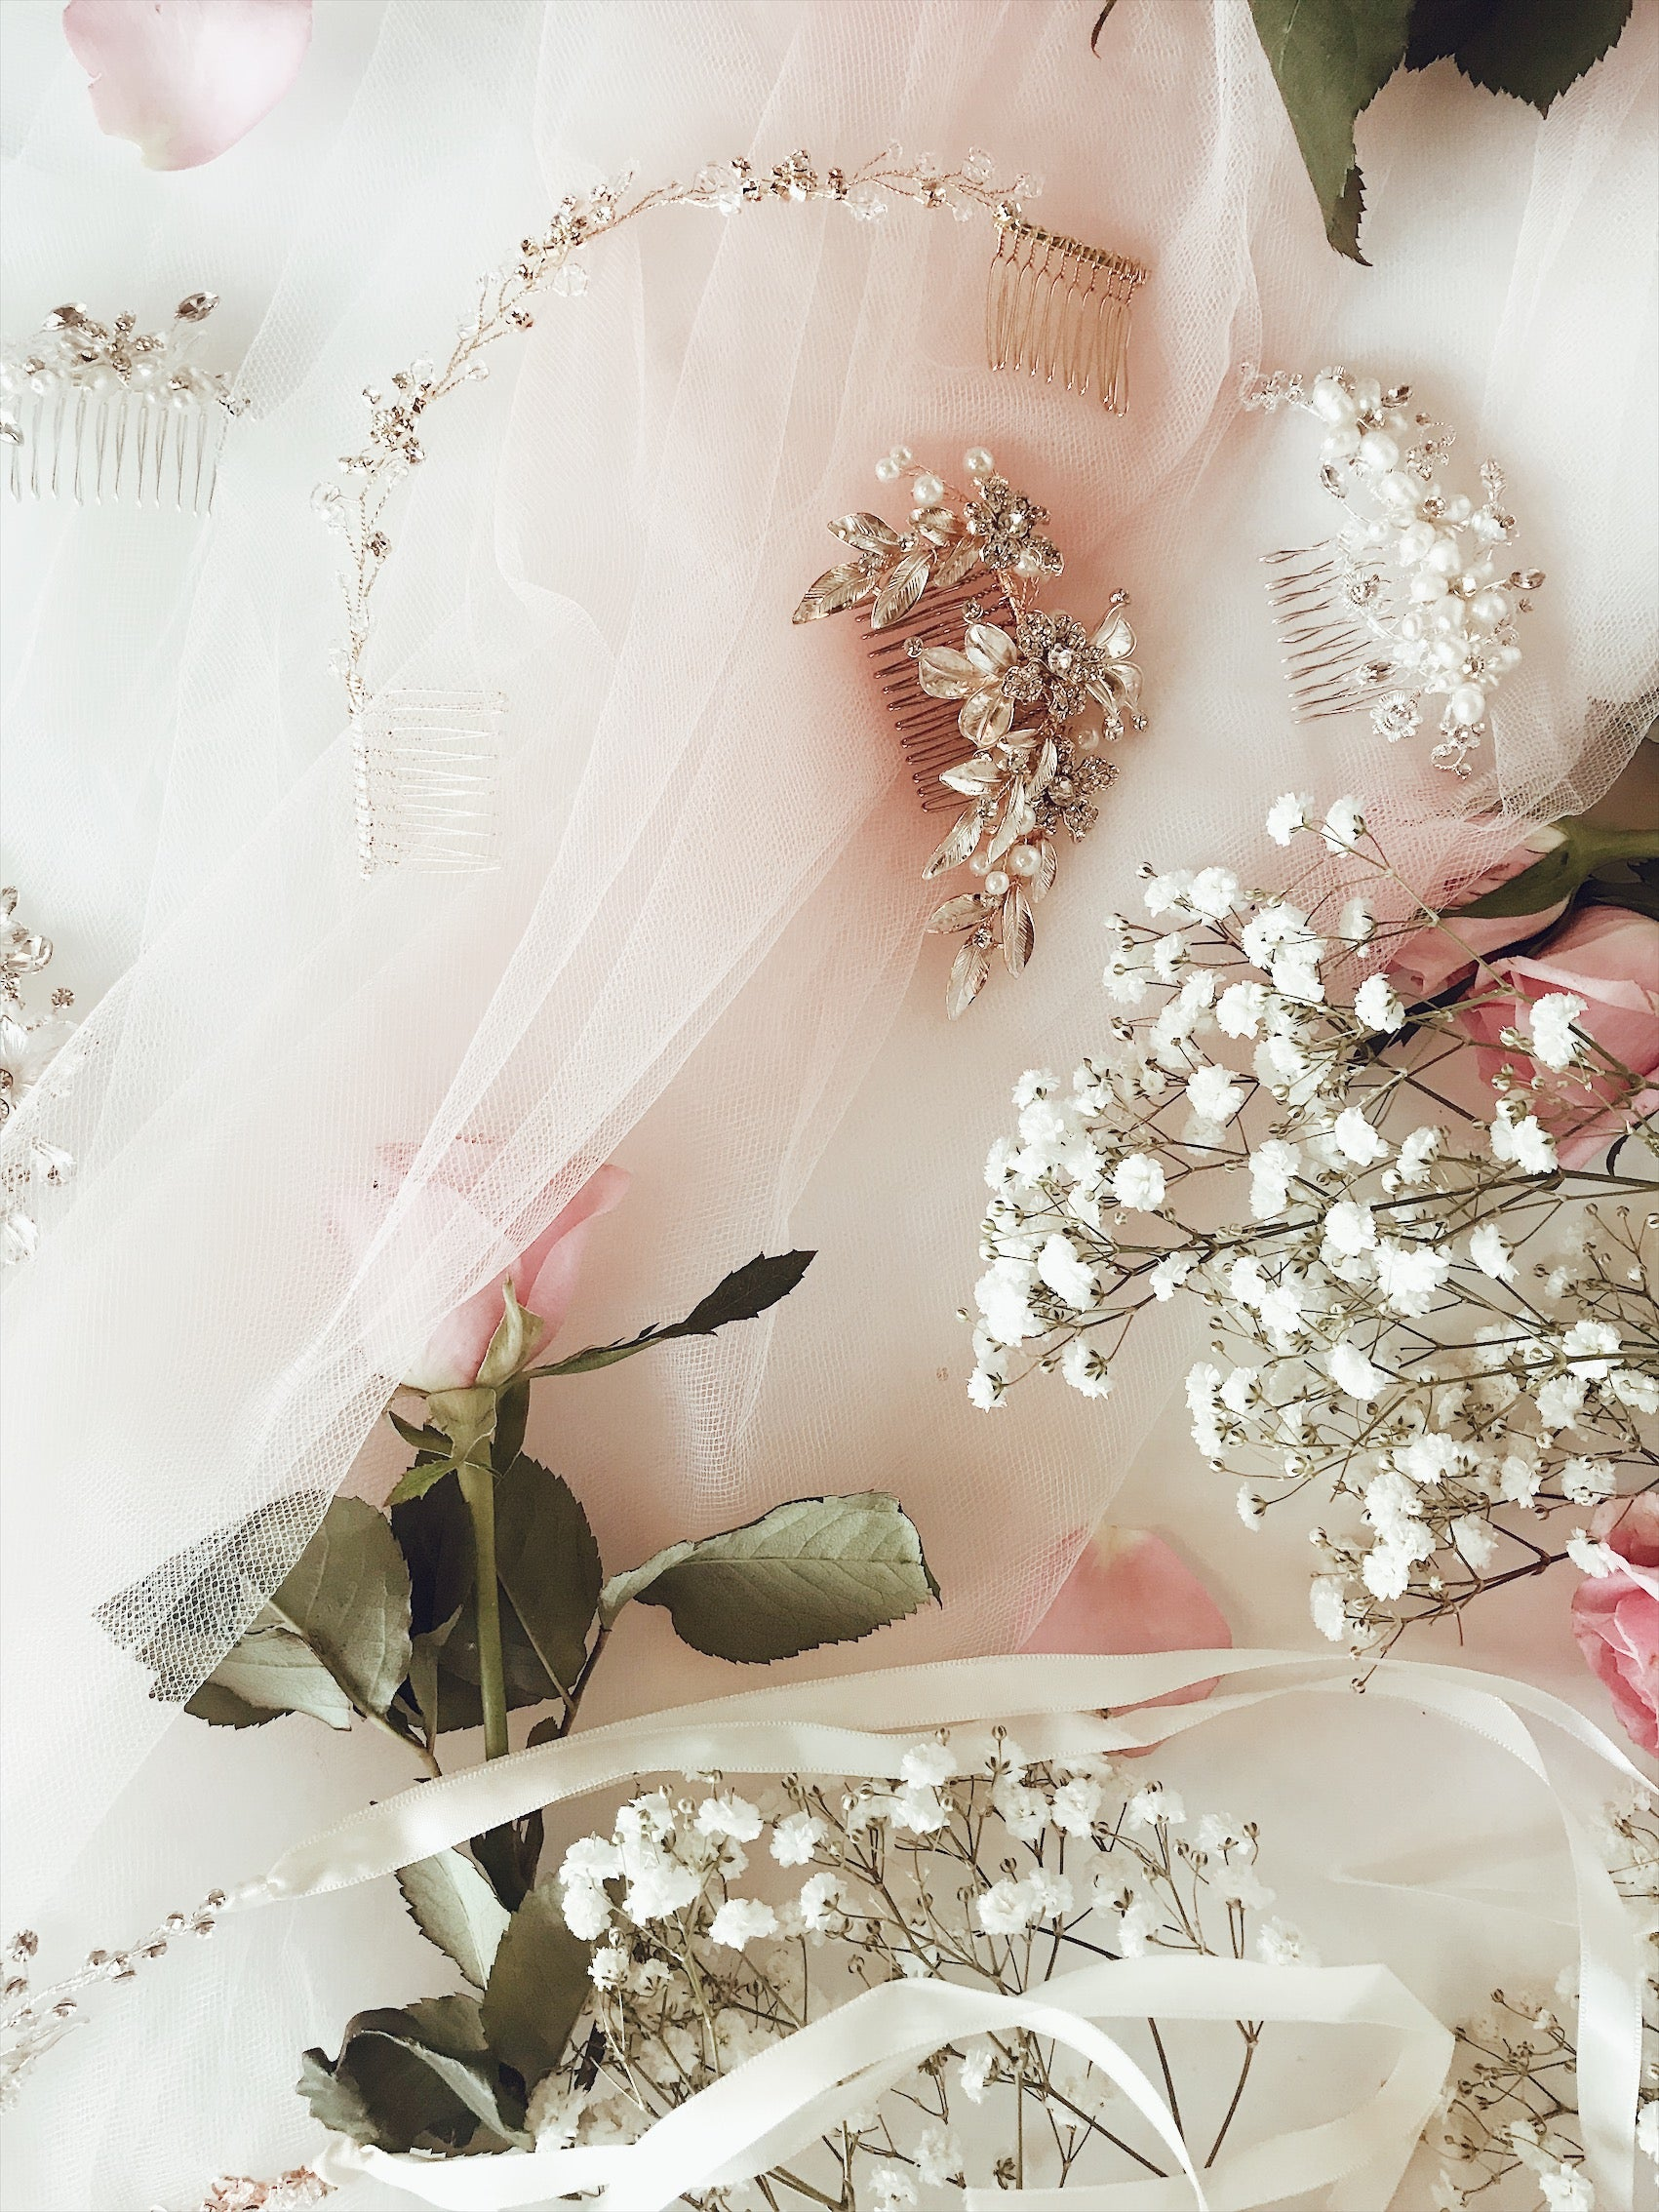 A look at the Lauren Elaine Bridal curated Accessories collection of wedding hair combs and flower crowns